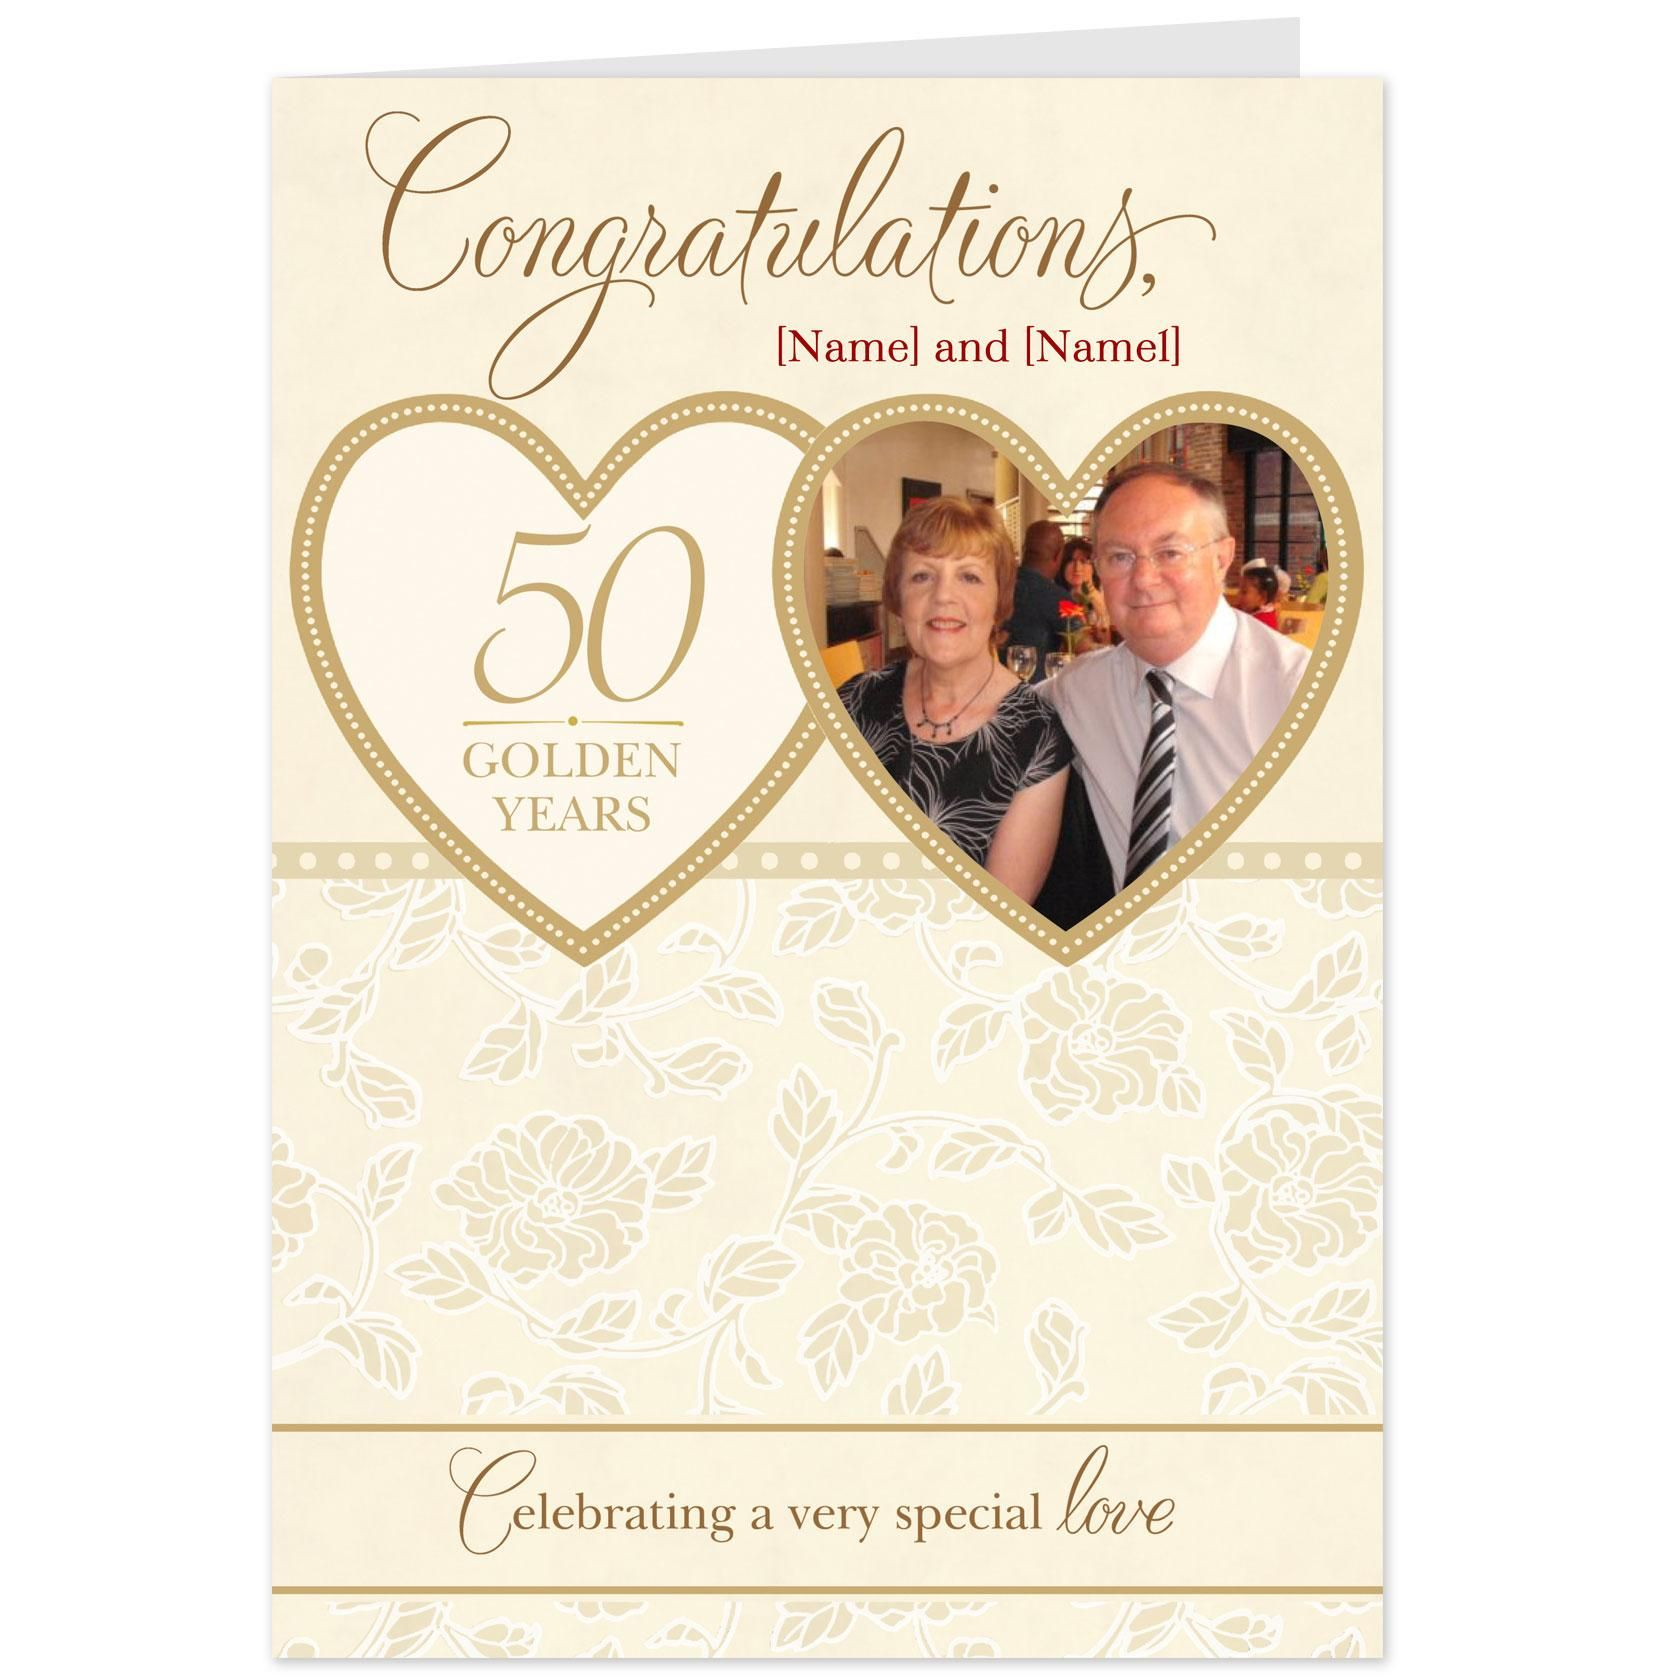 Httpsgooglesearchq50th anniversary cards greeting httpsgooglesearchq50th anniversary kristyandbryce Images